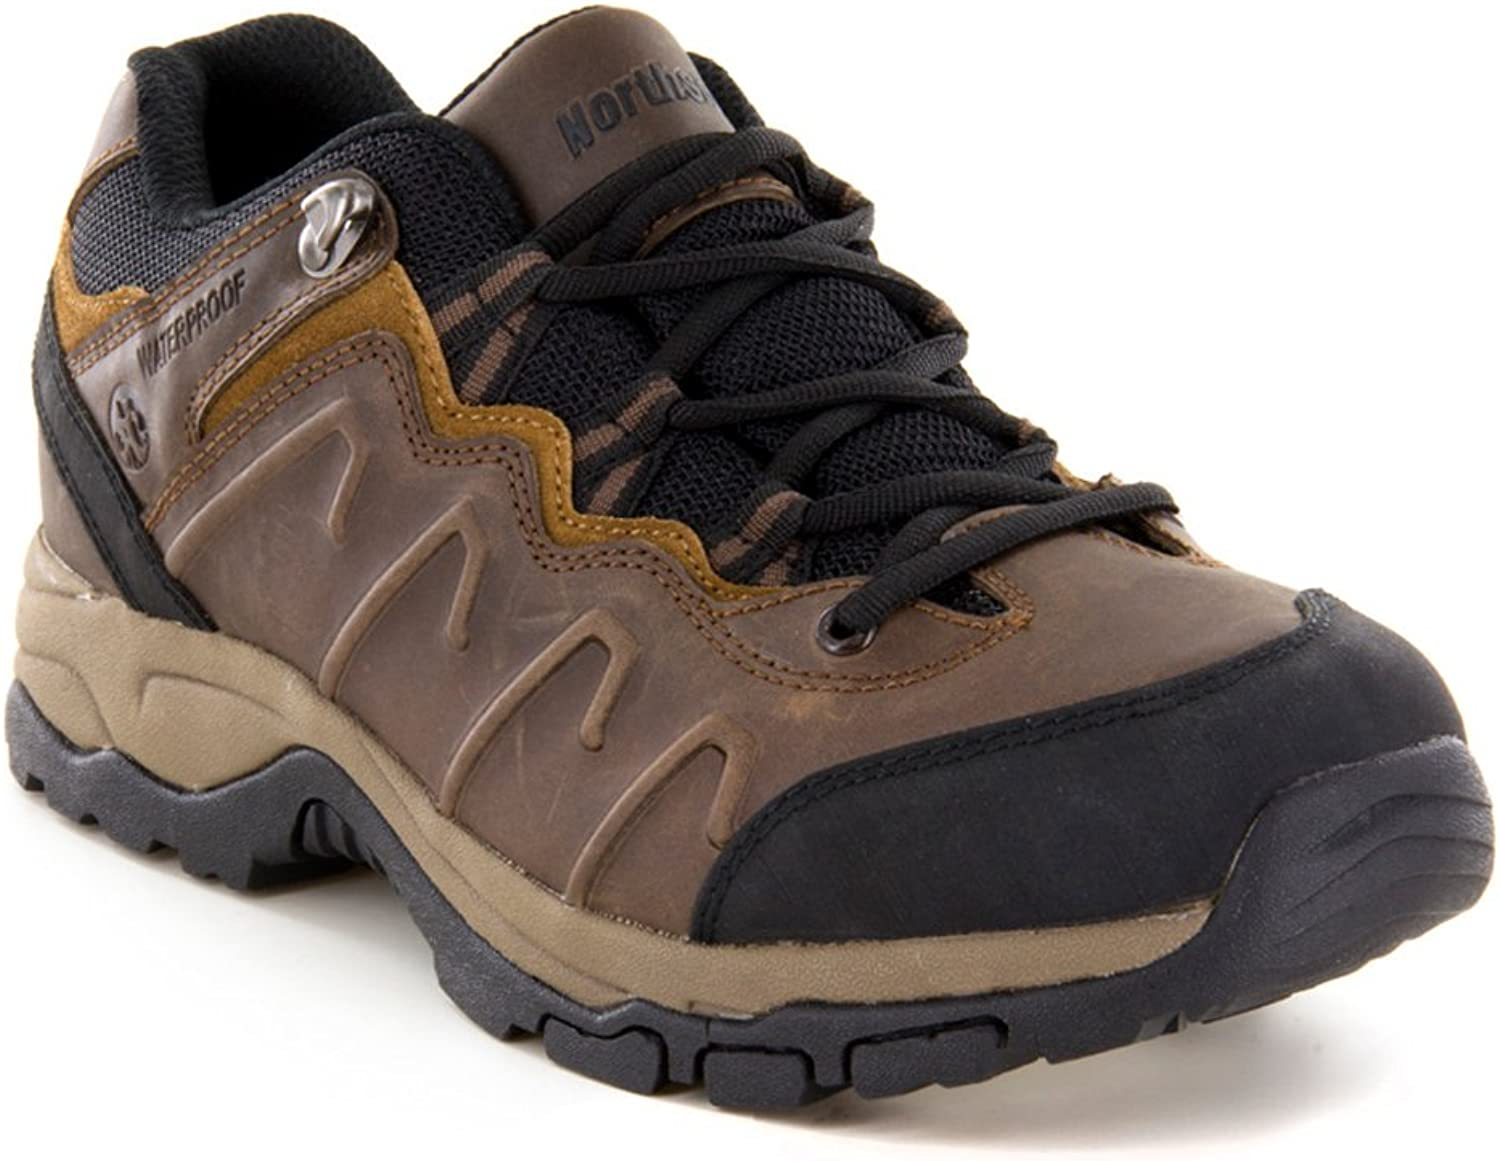 Northside 315816M Men's Talus WP Low Hiker Boots